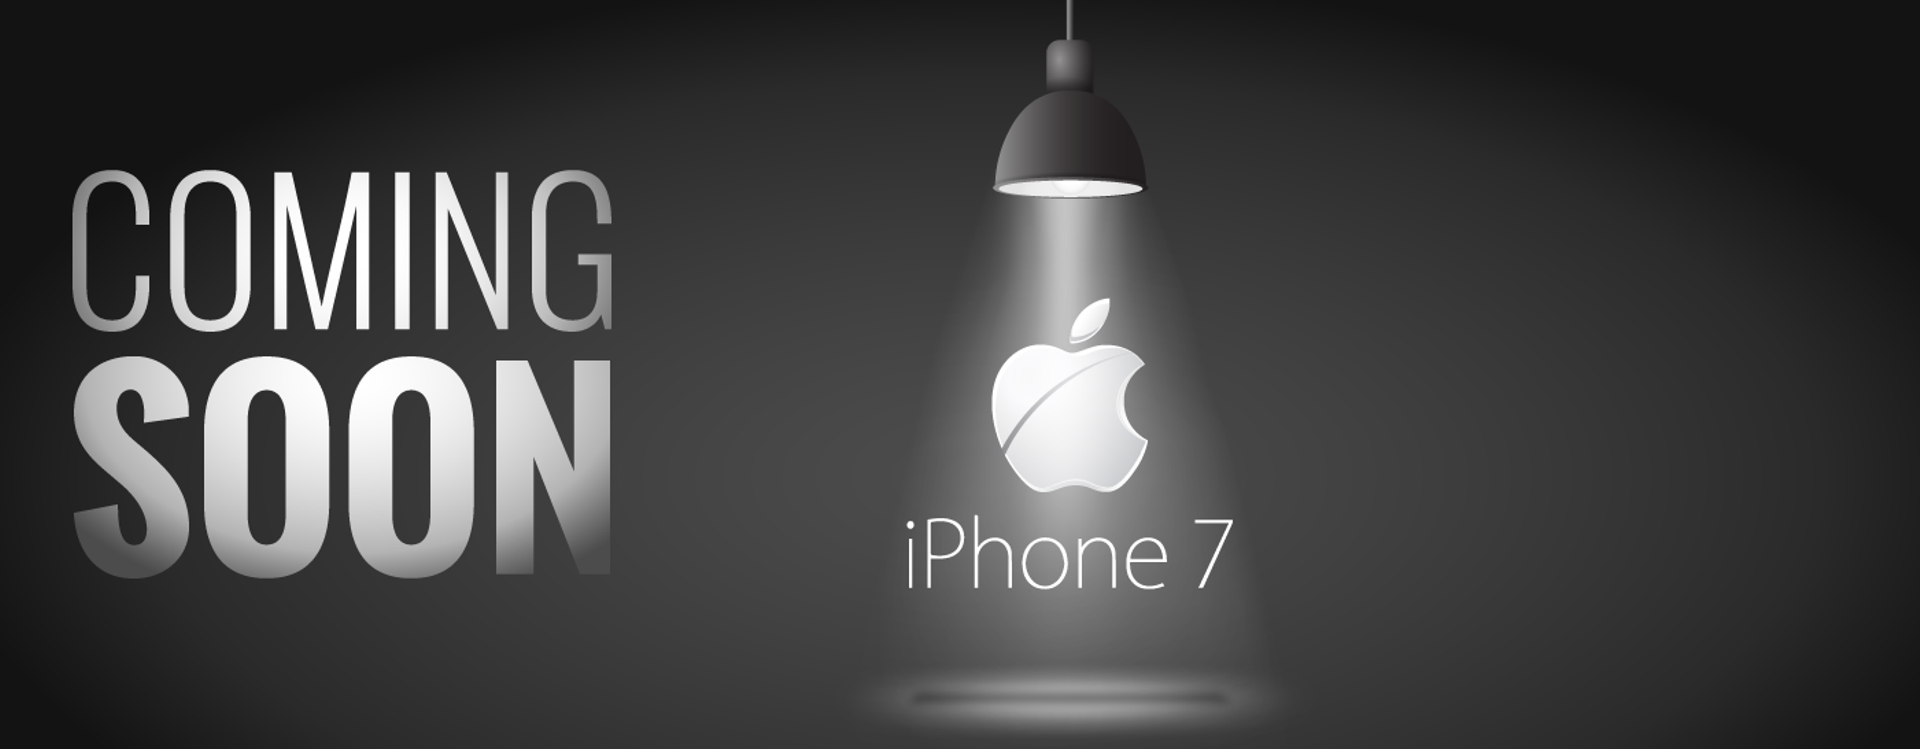 Apple will unveil their new iPhone 7 on the 7th of April